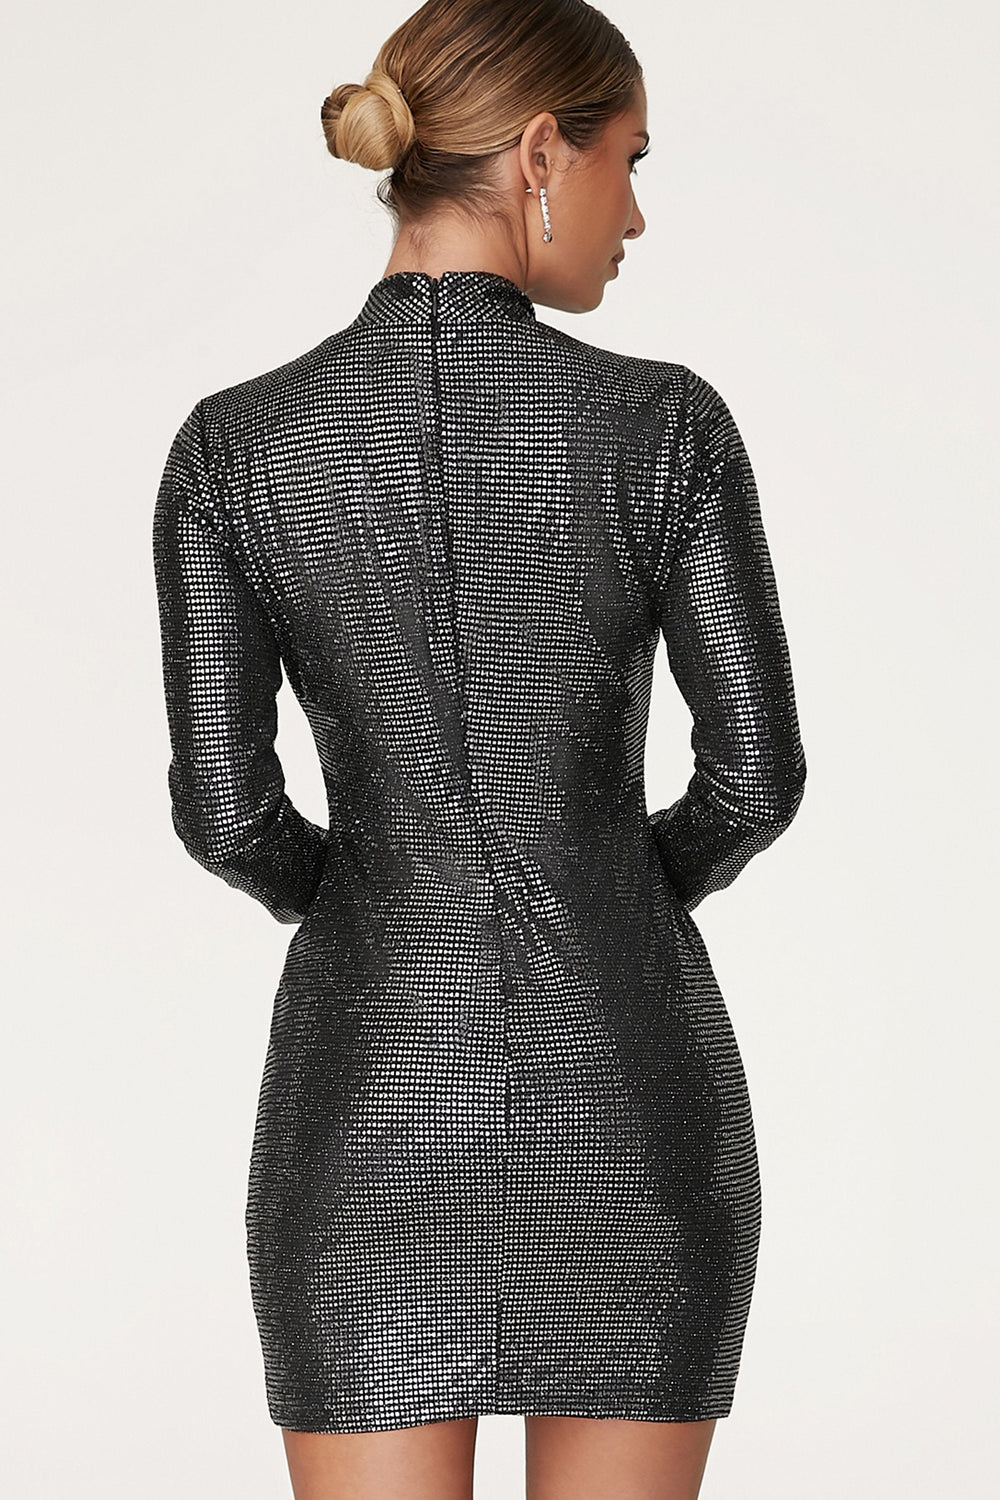 Gianna High Neck Long Sleeve Dress - Black - MESHKI ?id=12565649096779